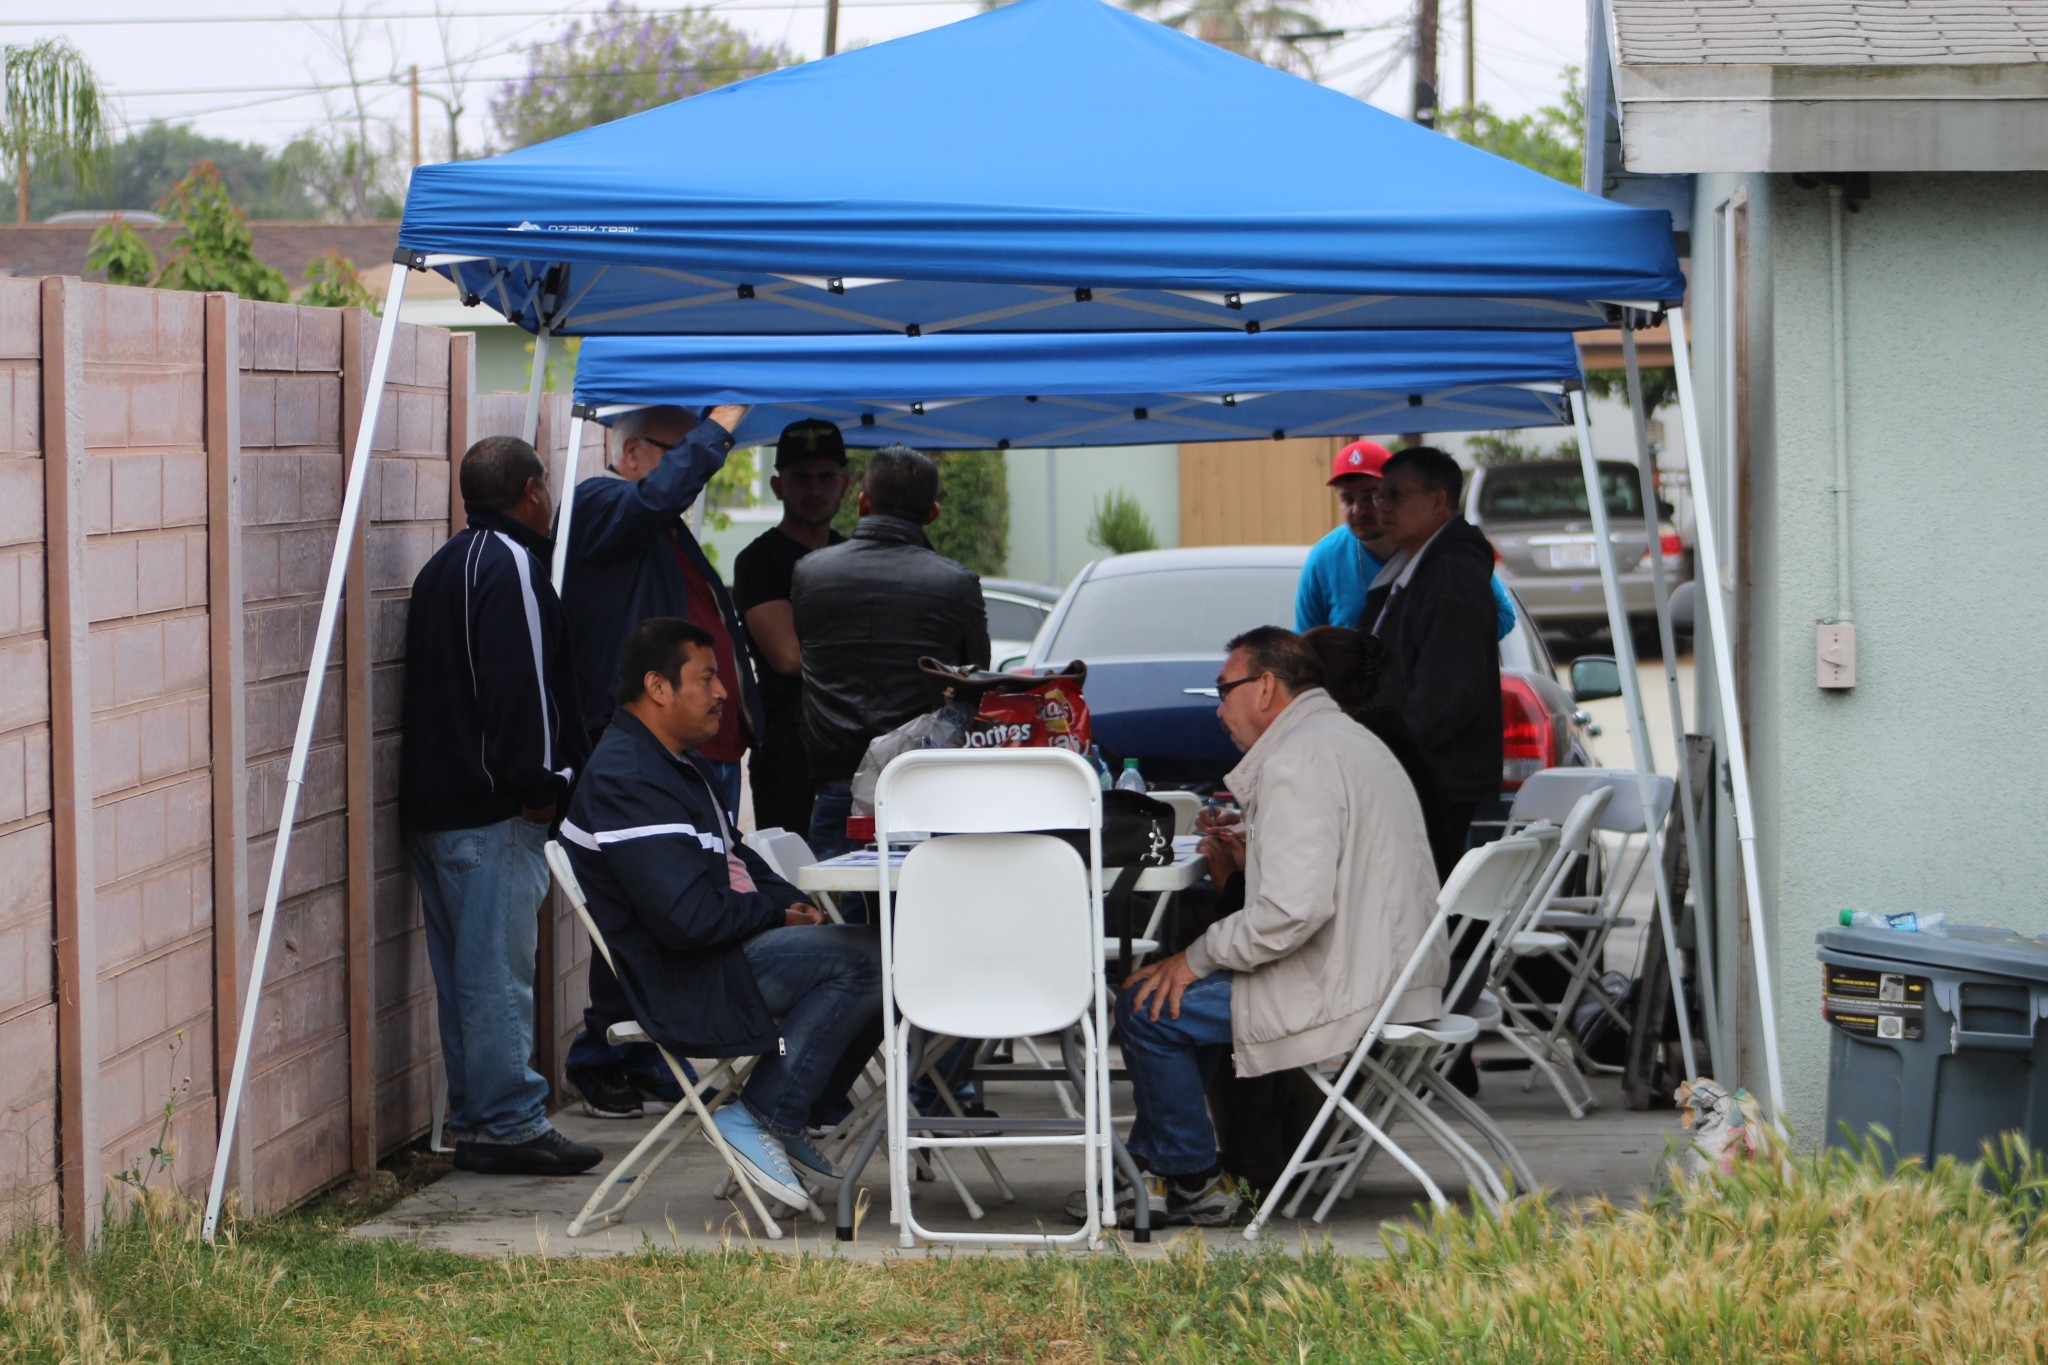 A group of workers gather to get help with wage claims. (Photo: Karen Foshay)